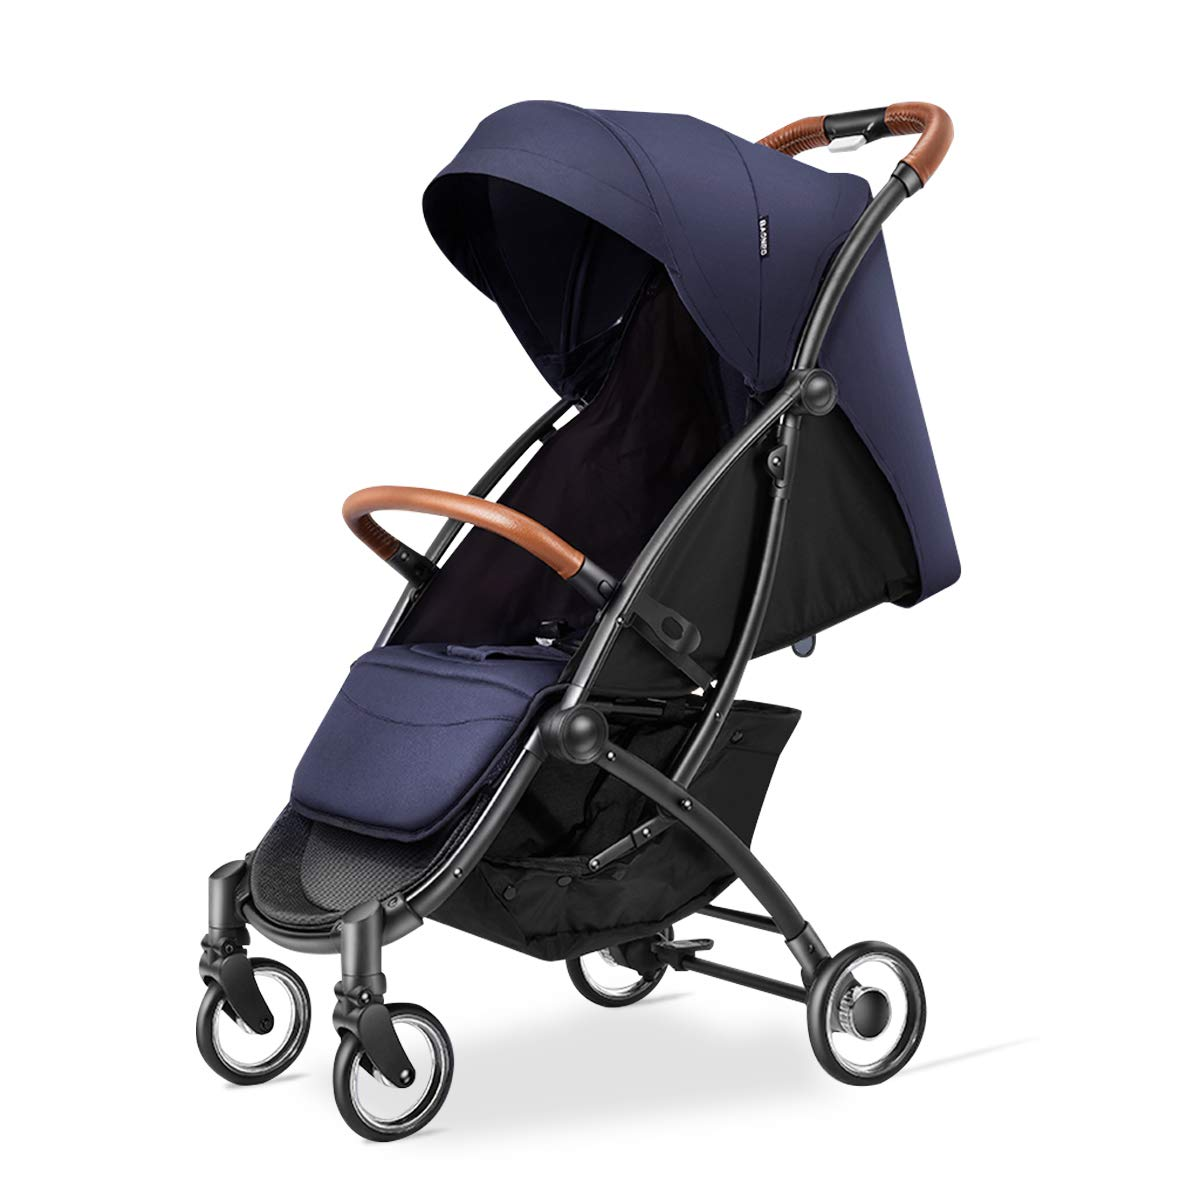 Kerrogee Baby Stroller, Foldable Travel Pram with Oversize Canopy, Adjustable Seat and Shock Absorbing Frame, Suit for Daily Life